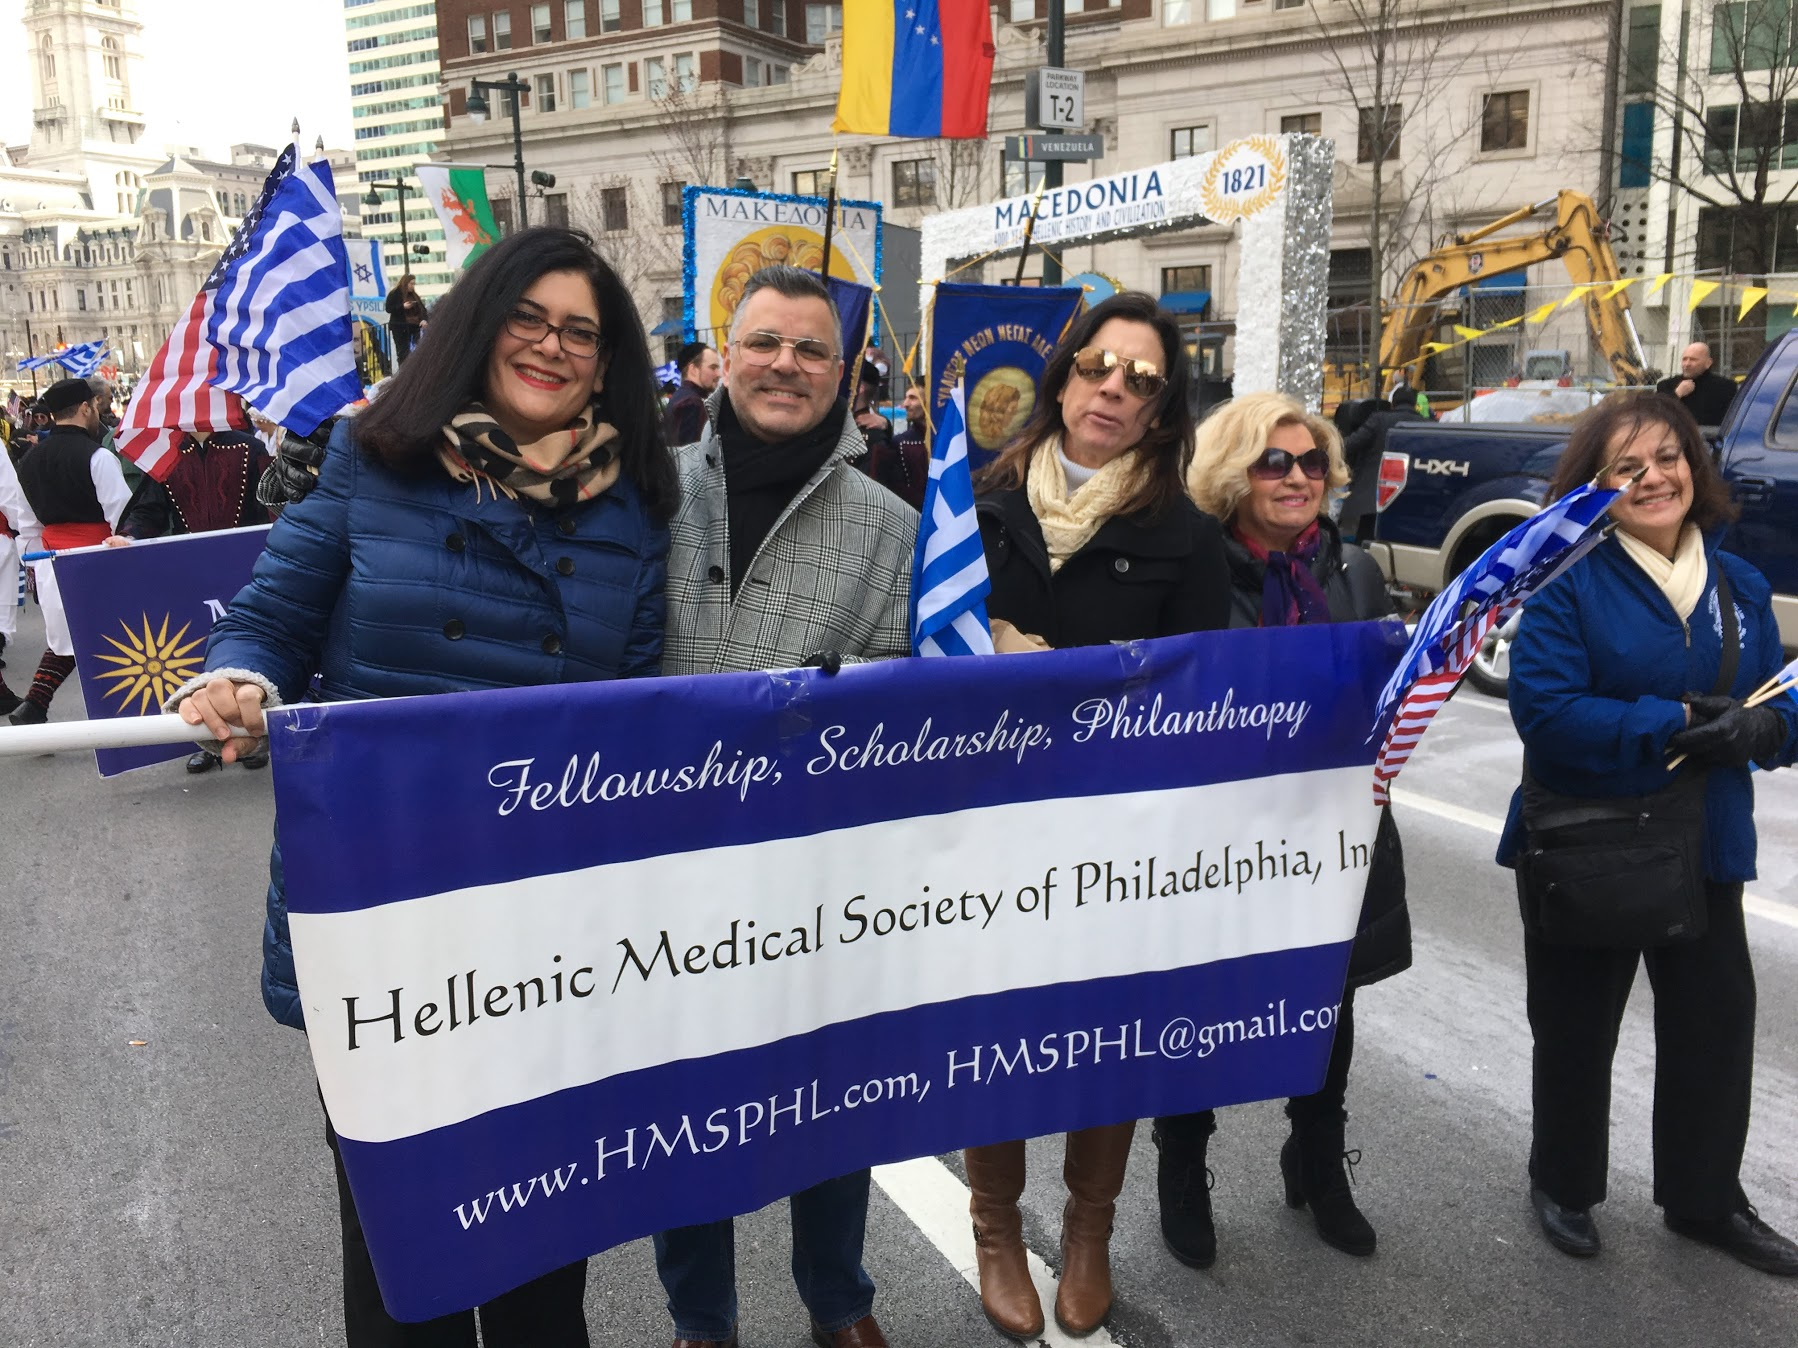 Greek Independence Day Parade, Sunday April 7th on JFK Parkway